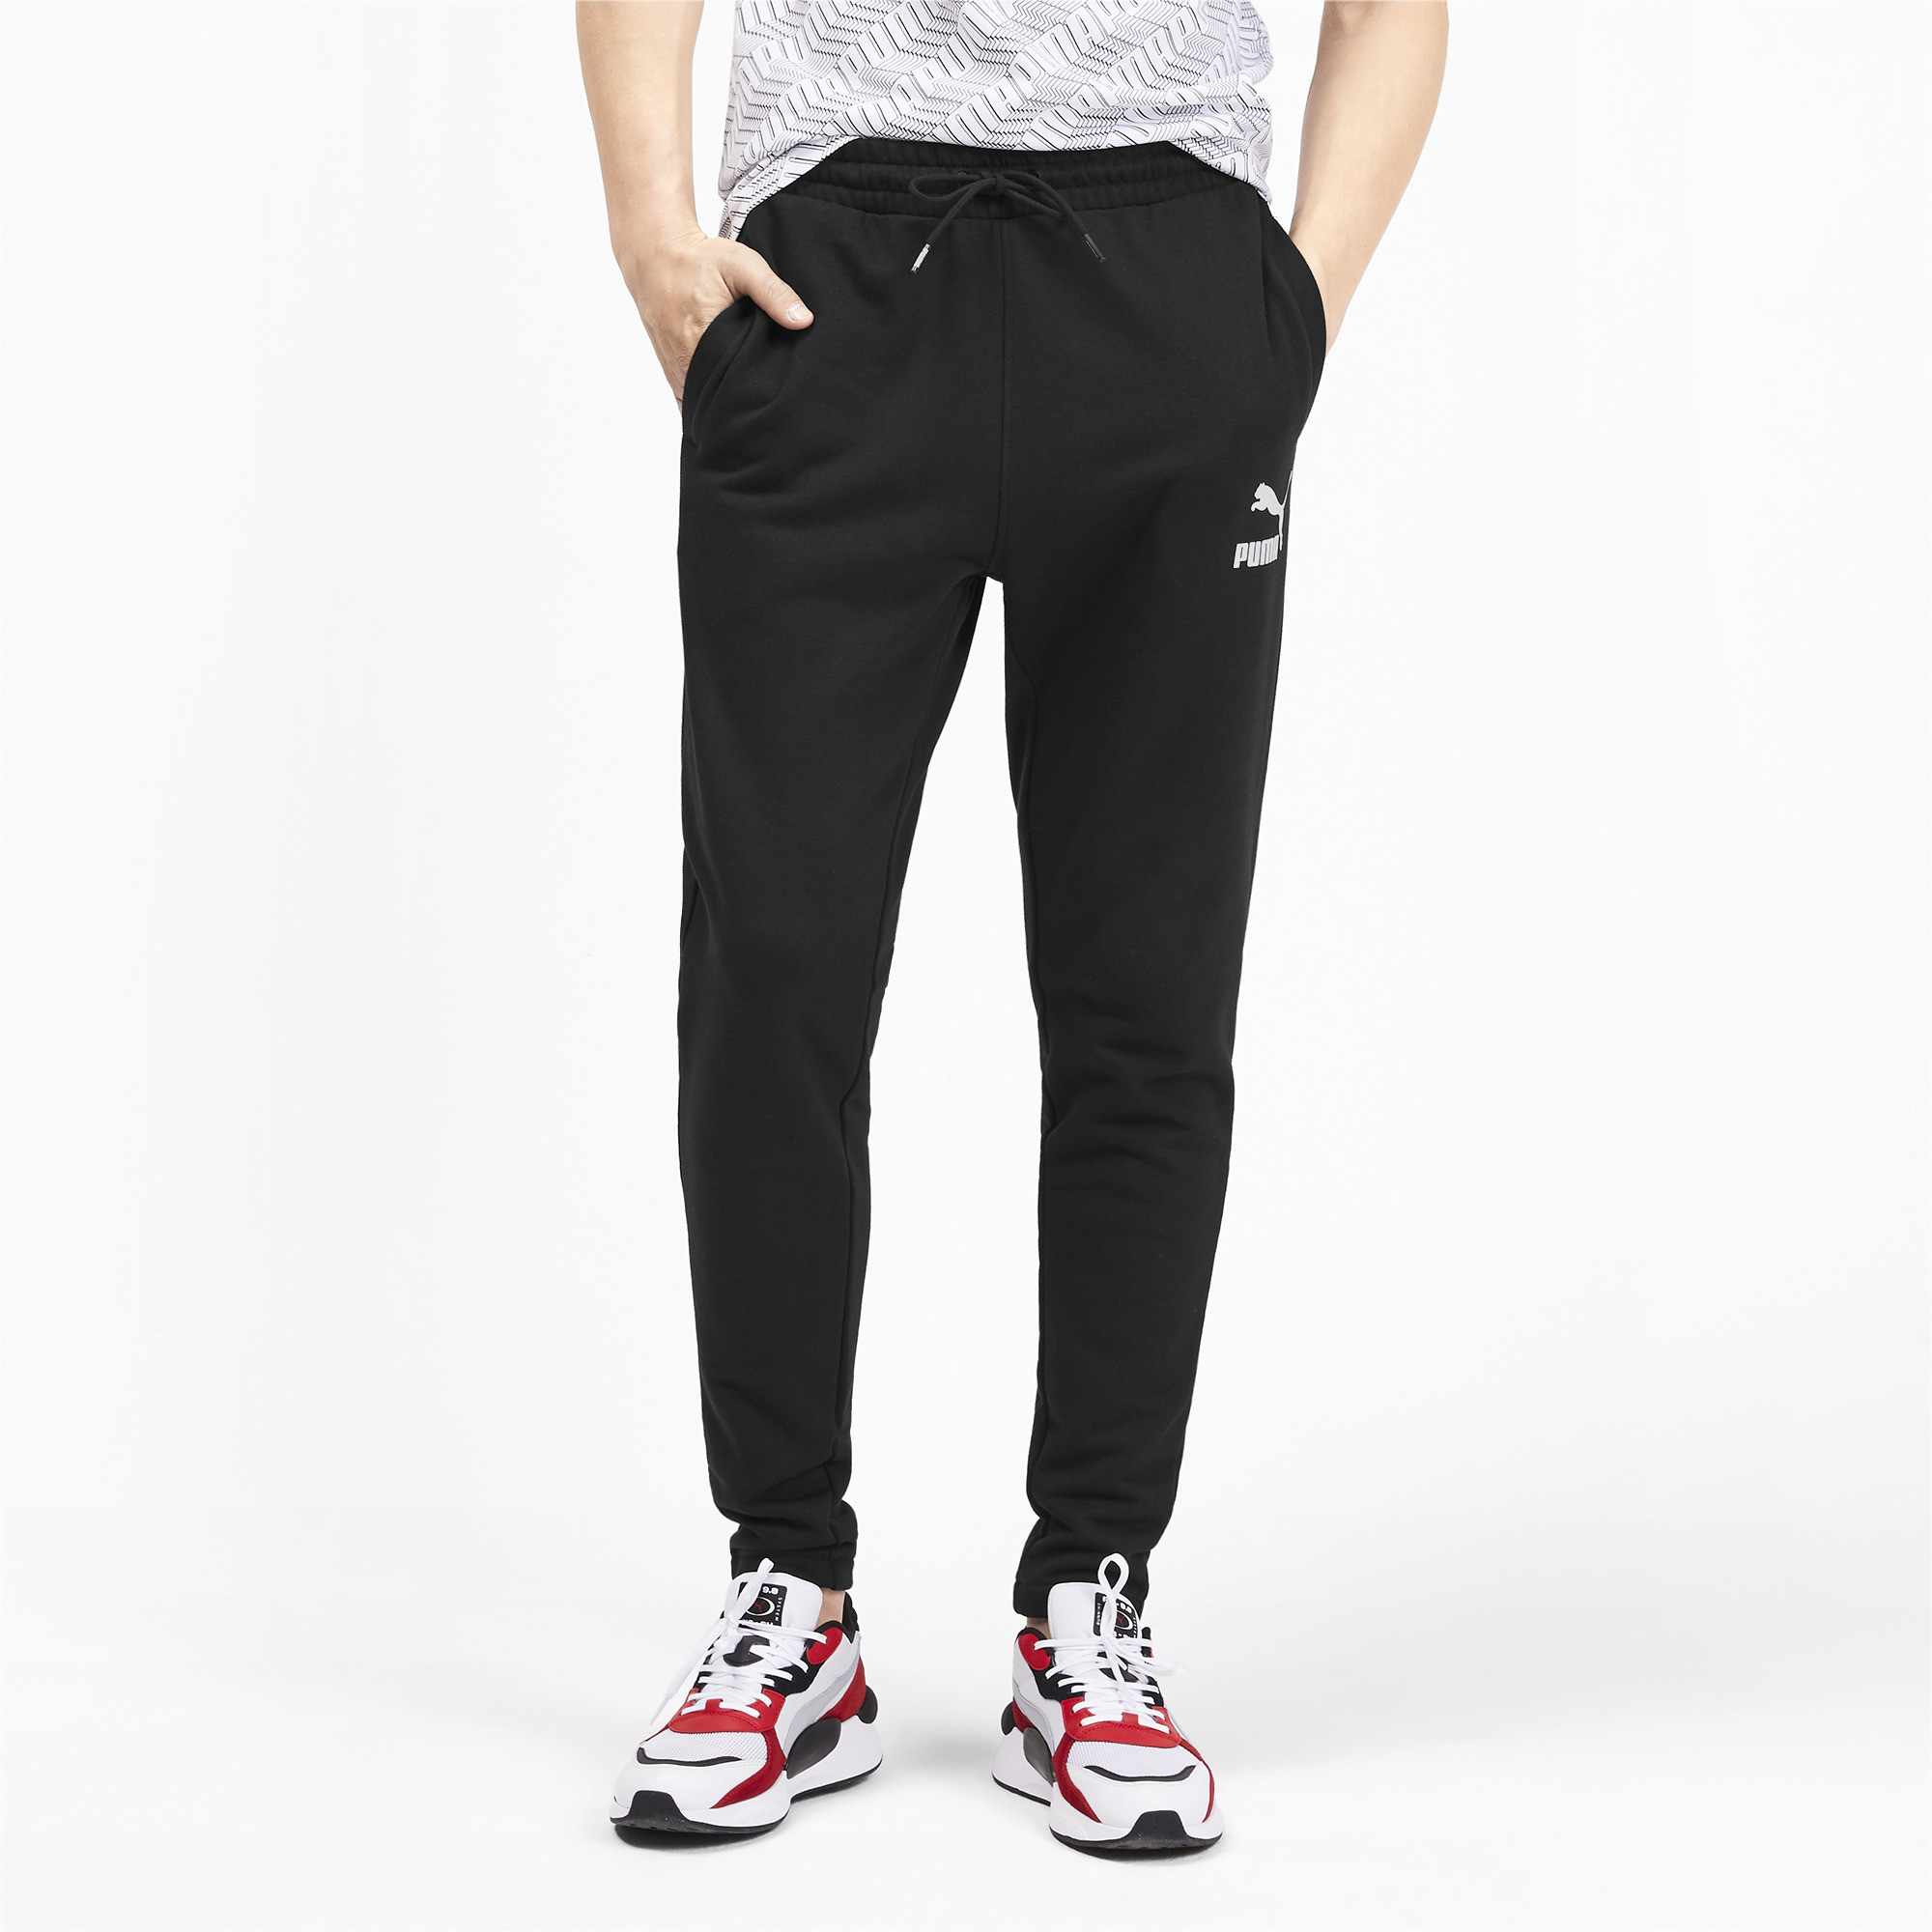 PUMA-Men-039-s-Classics-Sweatpants thumbnail 9